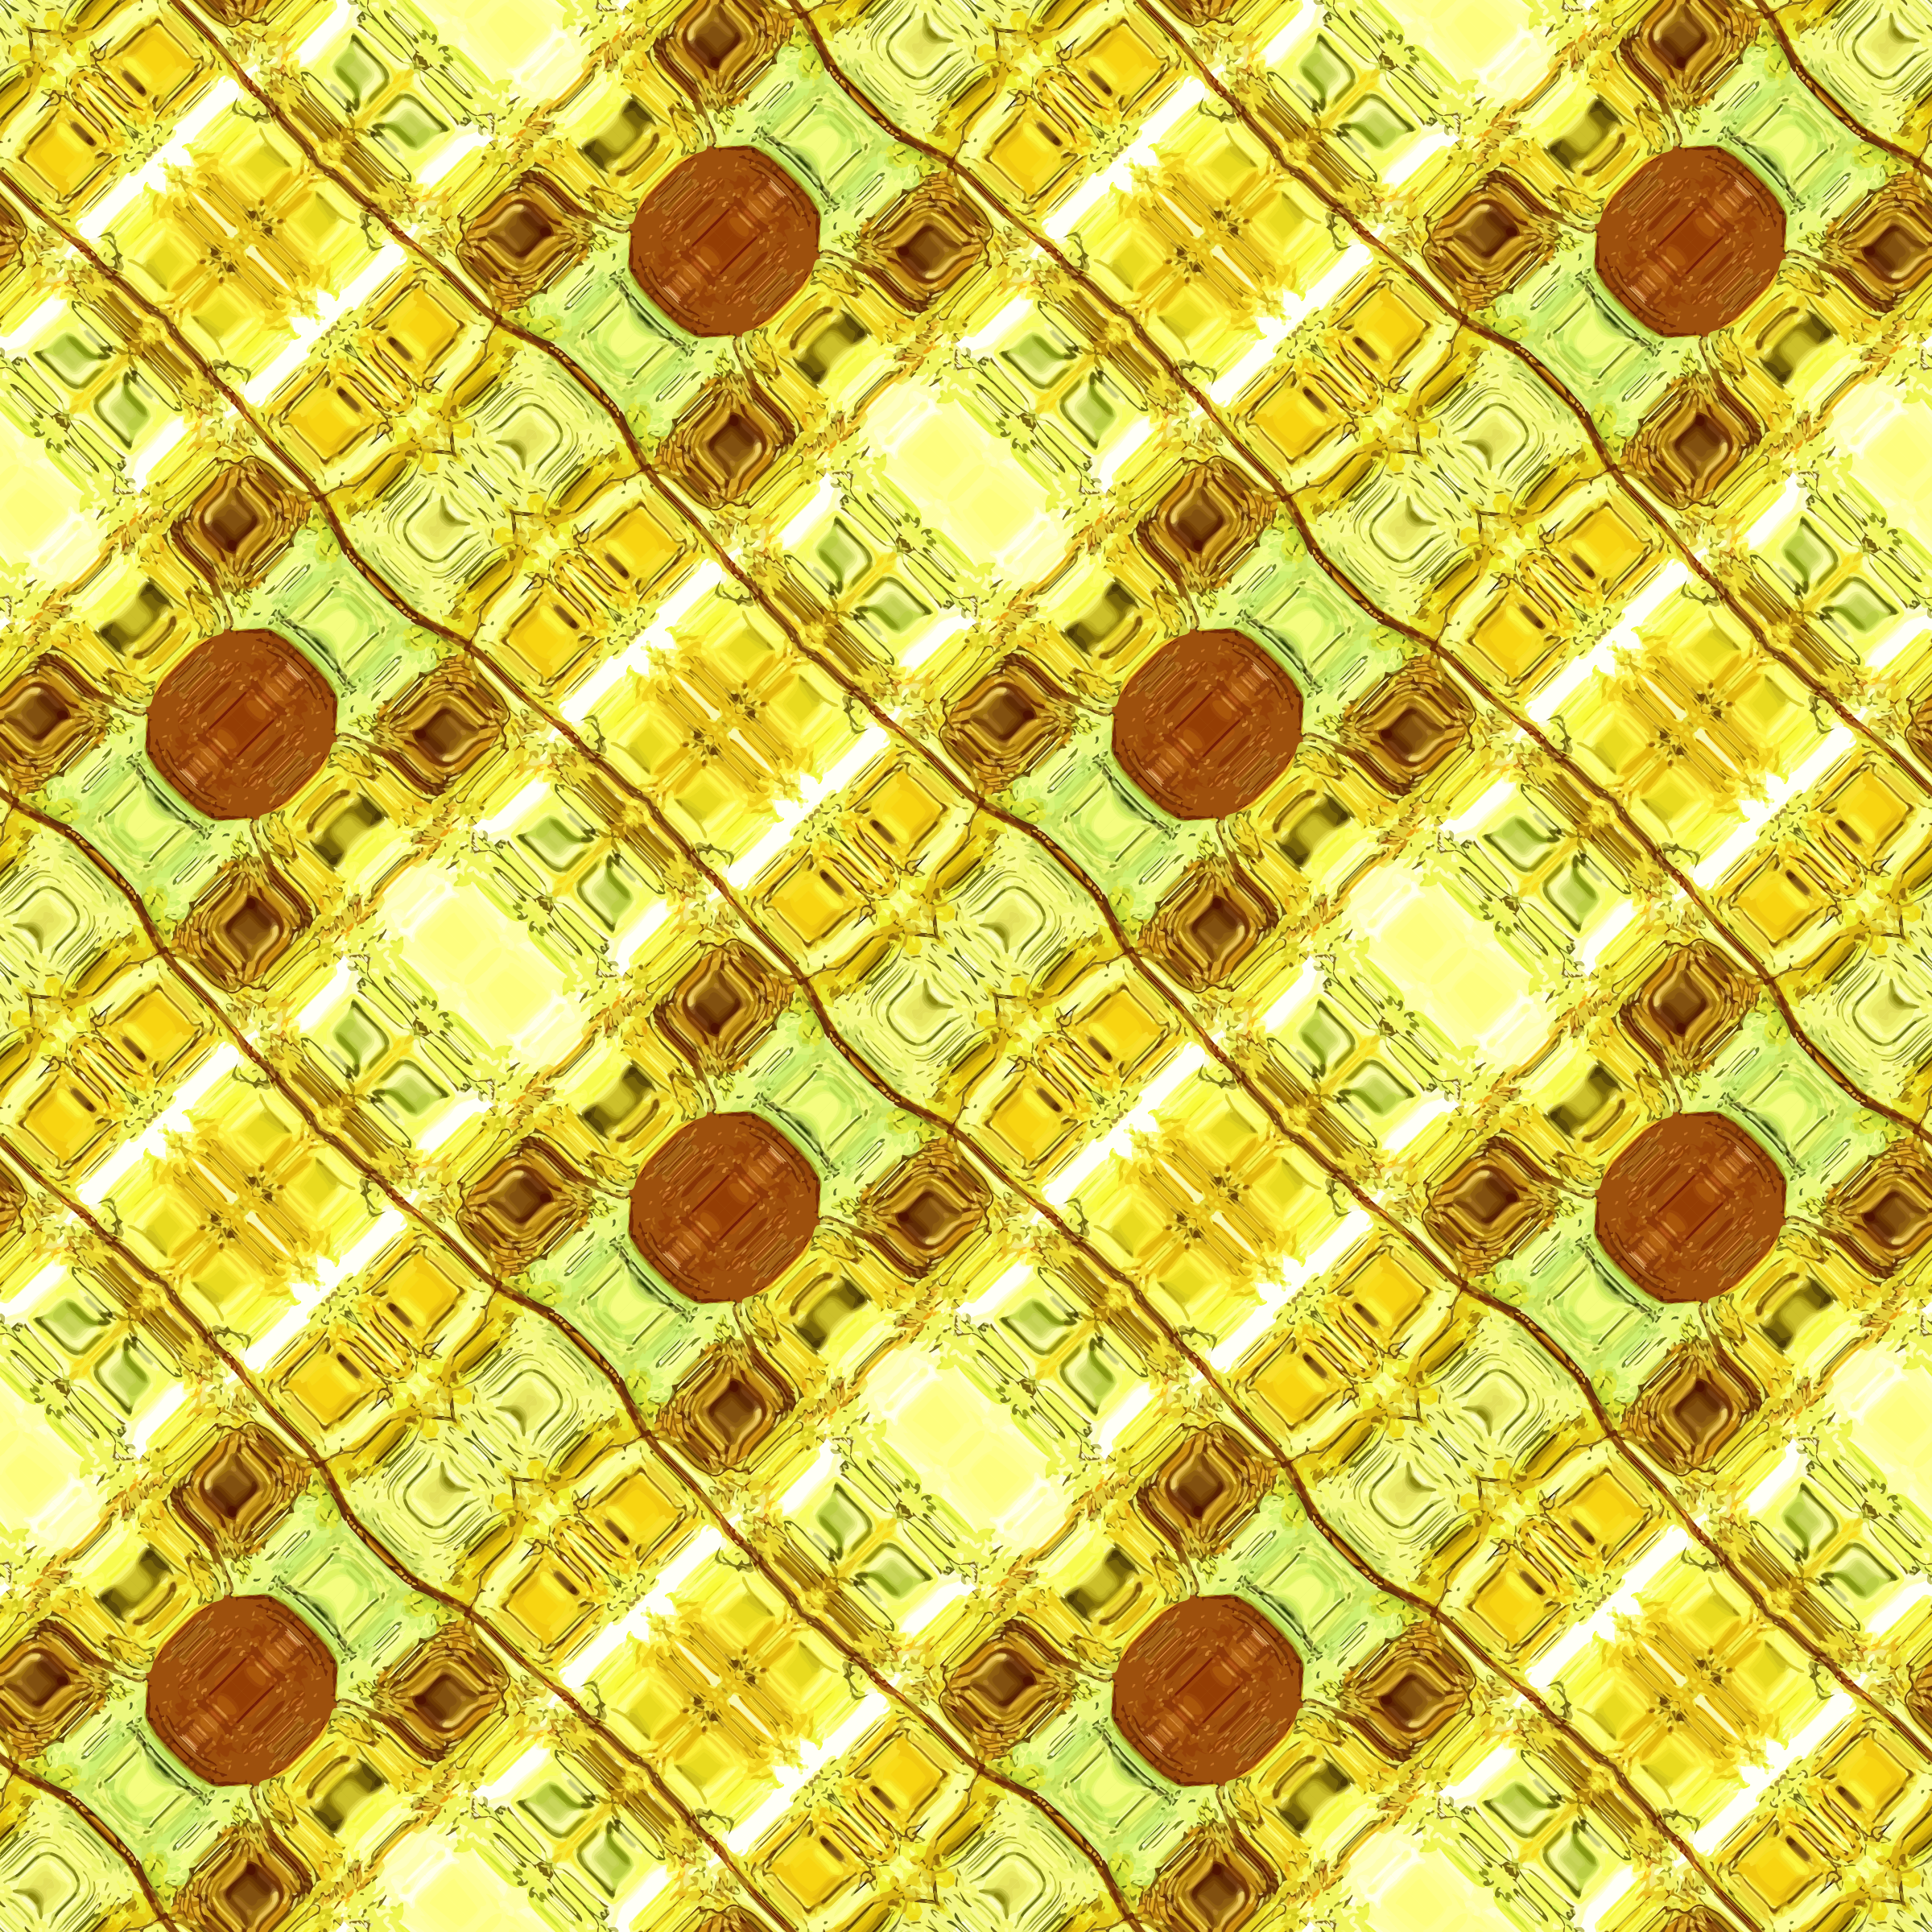 Background pattern 129 by Firkin